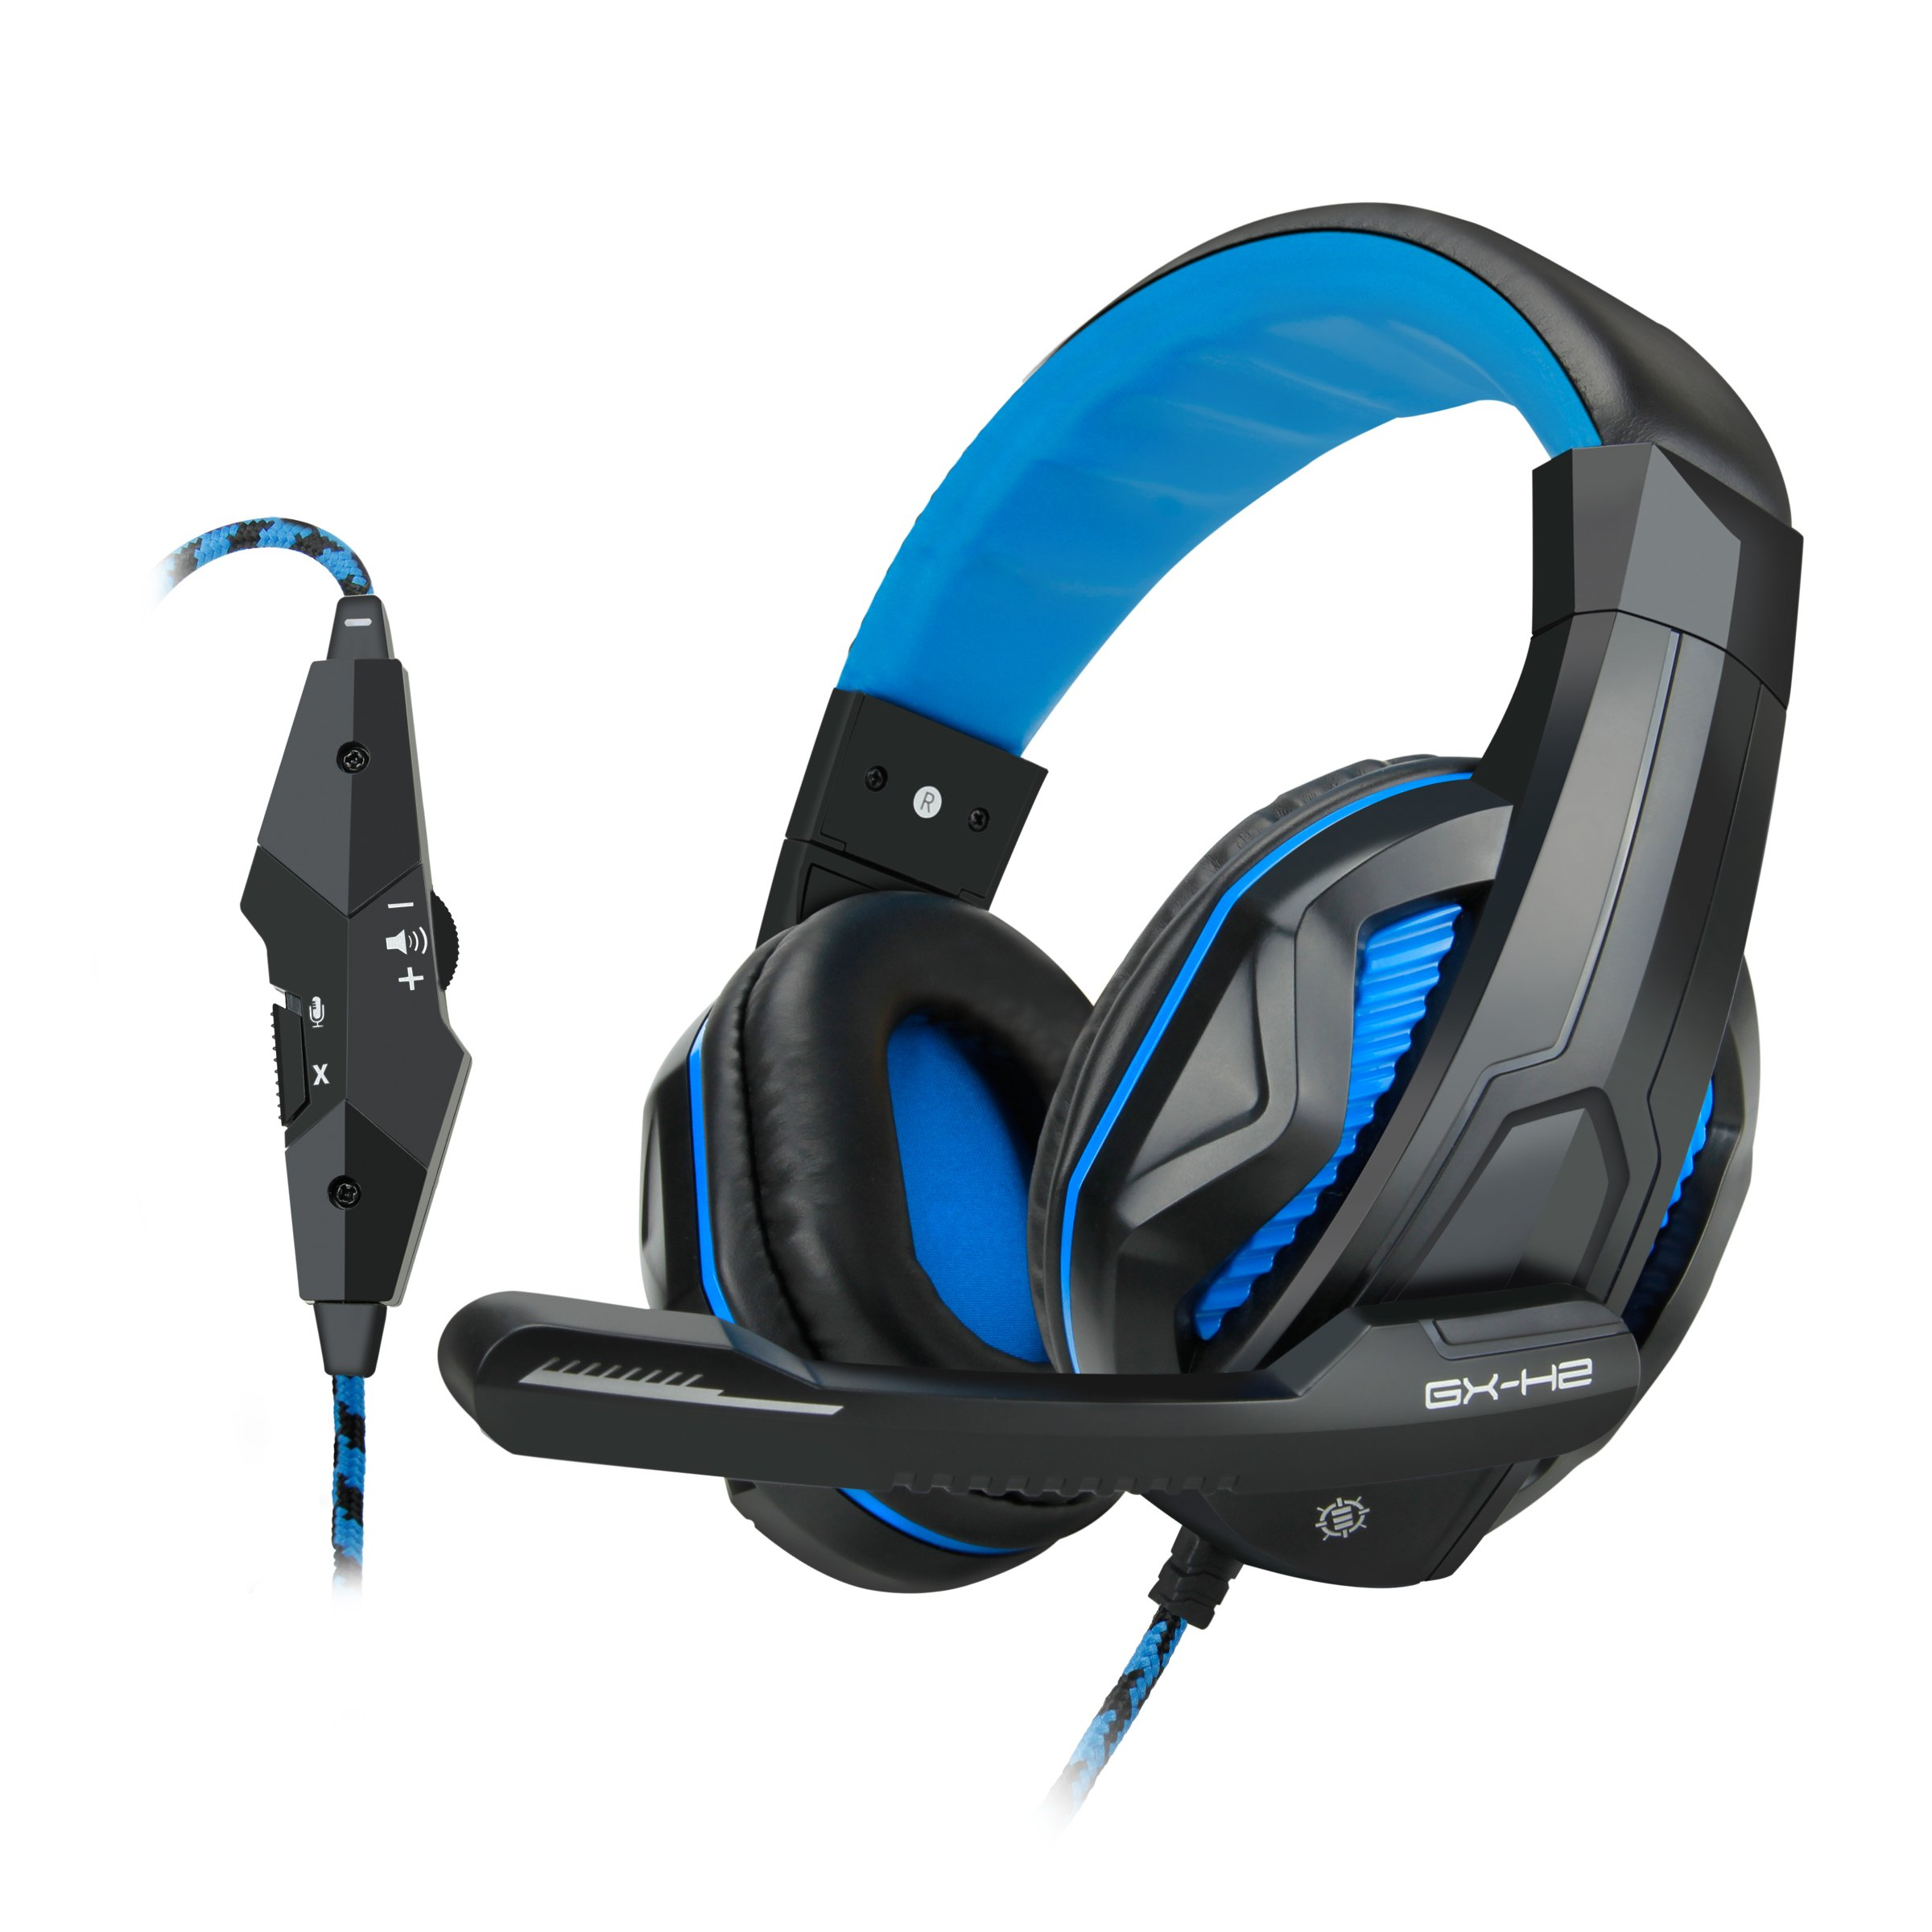 Enhance Gx-h2 Computer Gaming Headset With Noise Isolating.